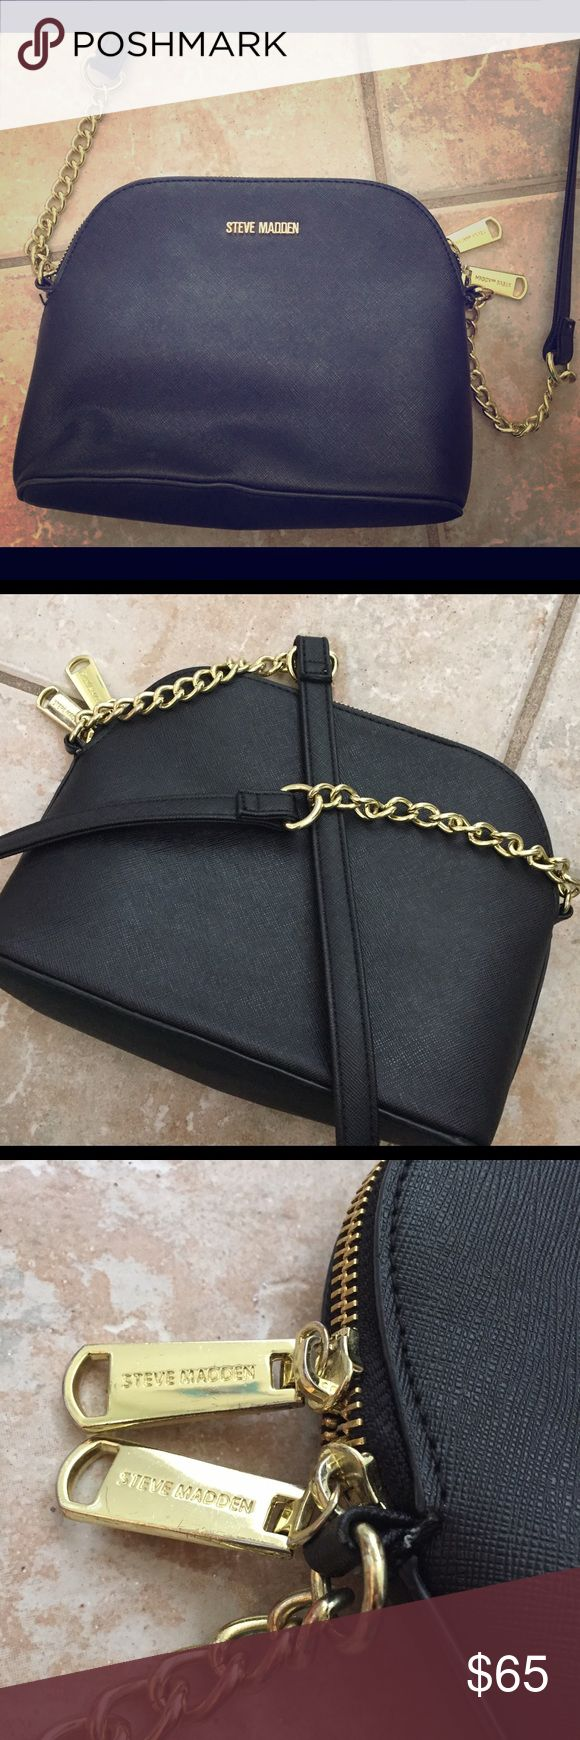 STEVE MADDEN Black Crossbody Gold Purse Handbag STEVE MADDEN Barely ever worn, black, crossbody women's handbag purse with gold zip up detail. Perfect for any occasion. Actually fits quite a bit! Can fit a phone, charger, and large wallet along with many other small items very easily. No scuffs or scratches on outside or tears in the inner material. Steve Madden Bags Crossbody Bags